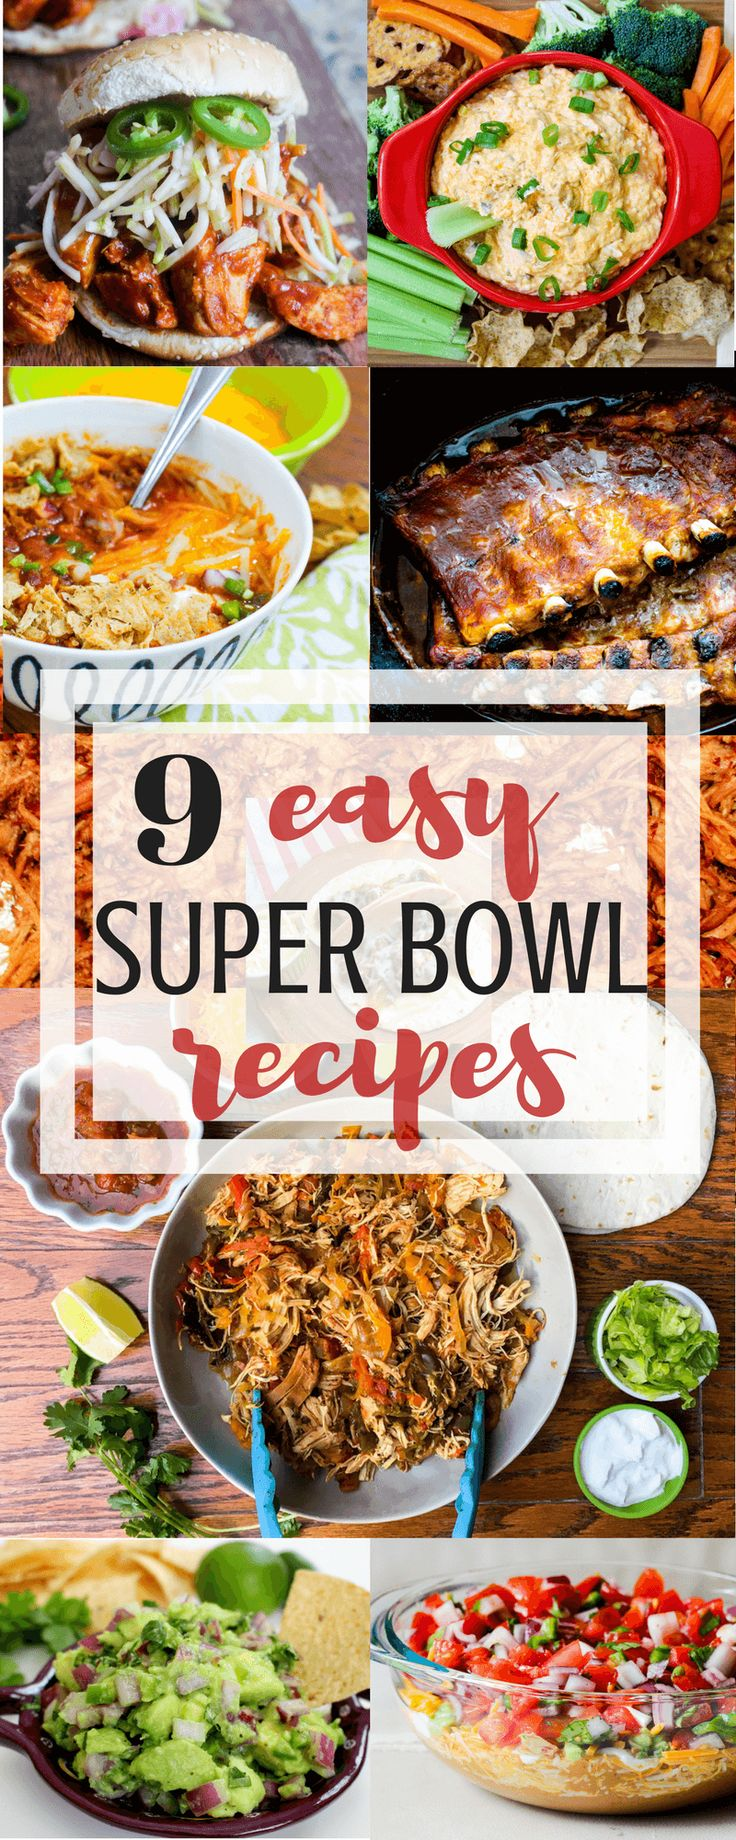 9 Easy Super Bowl Recipes Everyone Will Love! via @allyscooking